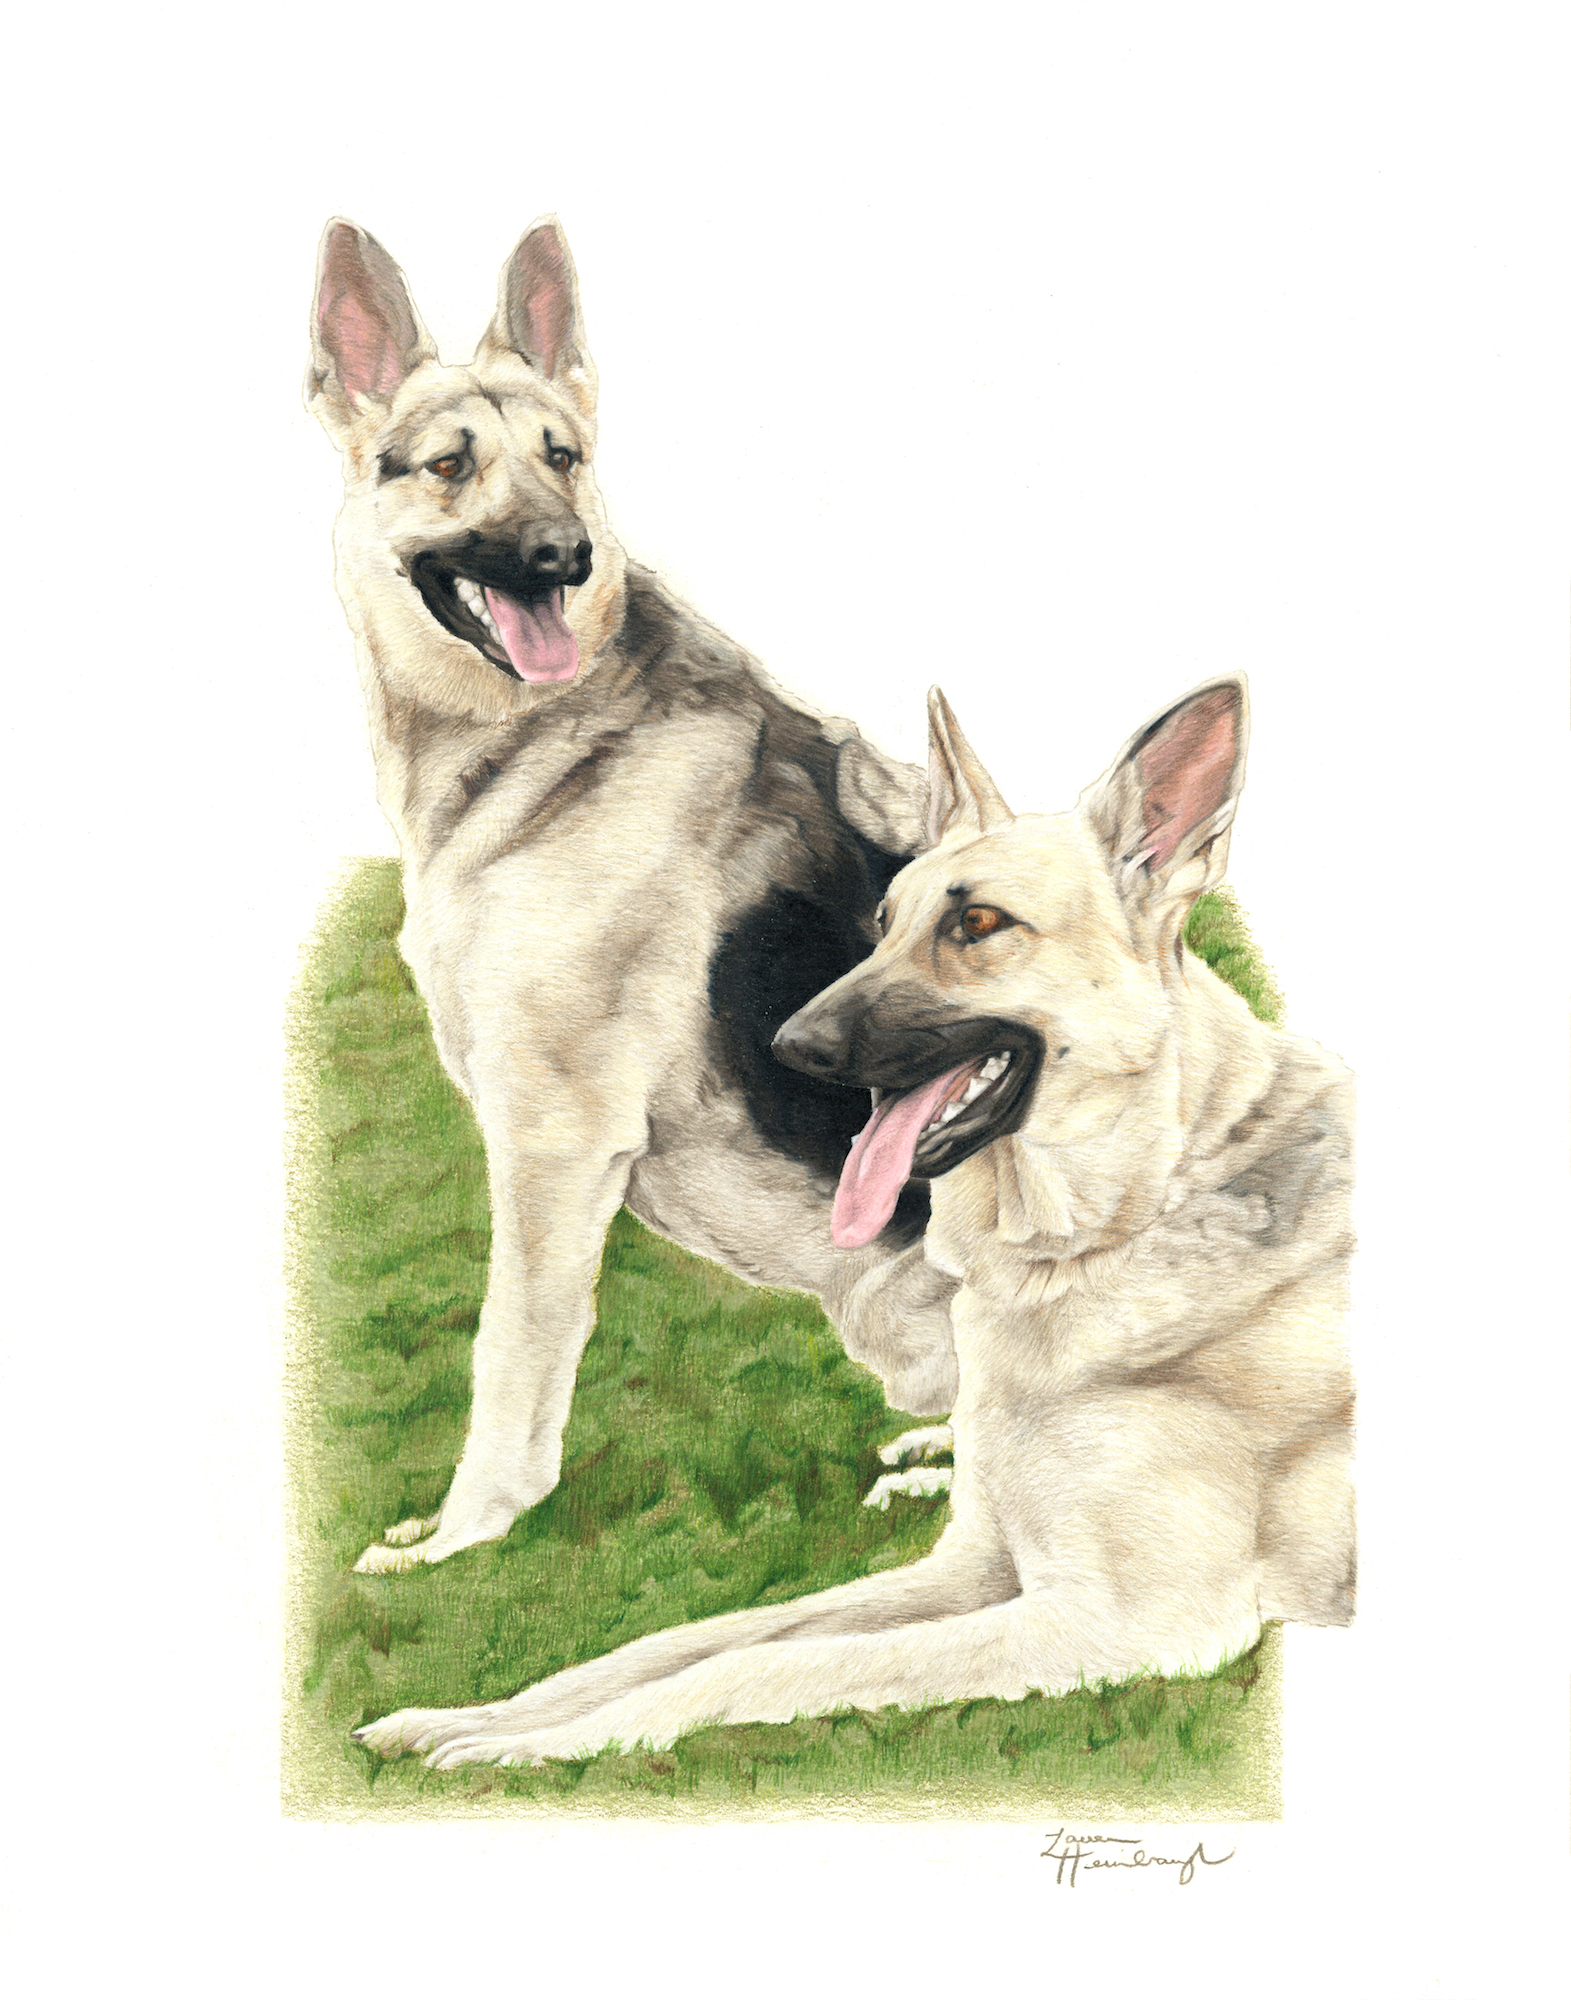 Callie and Chloe the German Shepherds (2016)